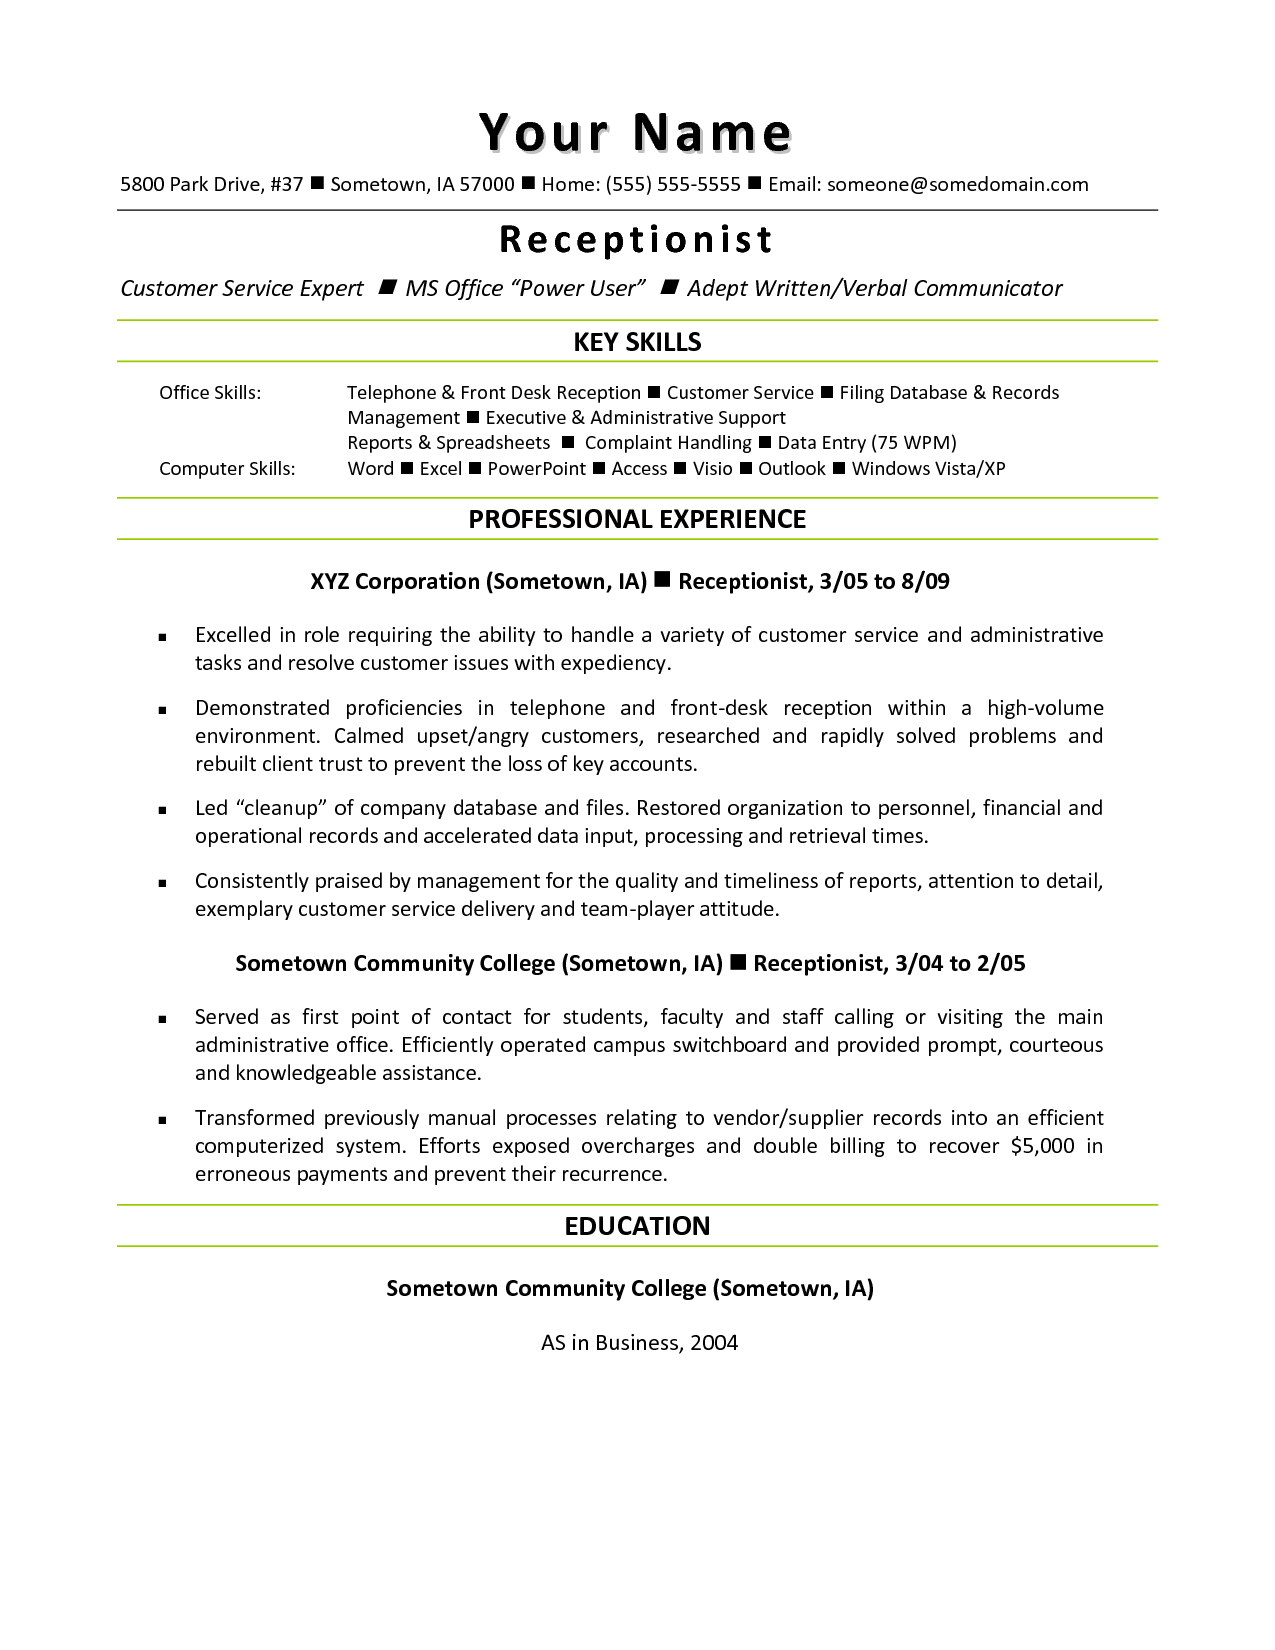 Law Front Office Receptionist Resume Key Skills And Professional Experience  Law Firm Resume